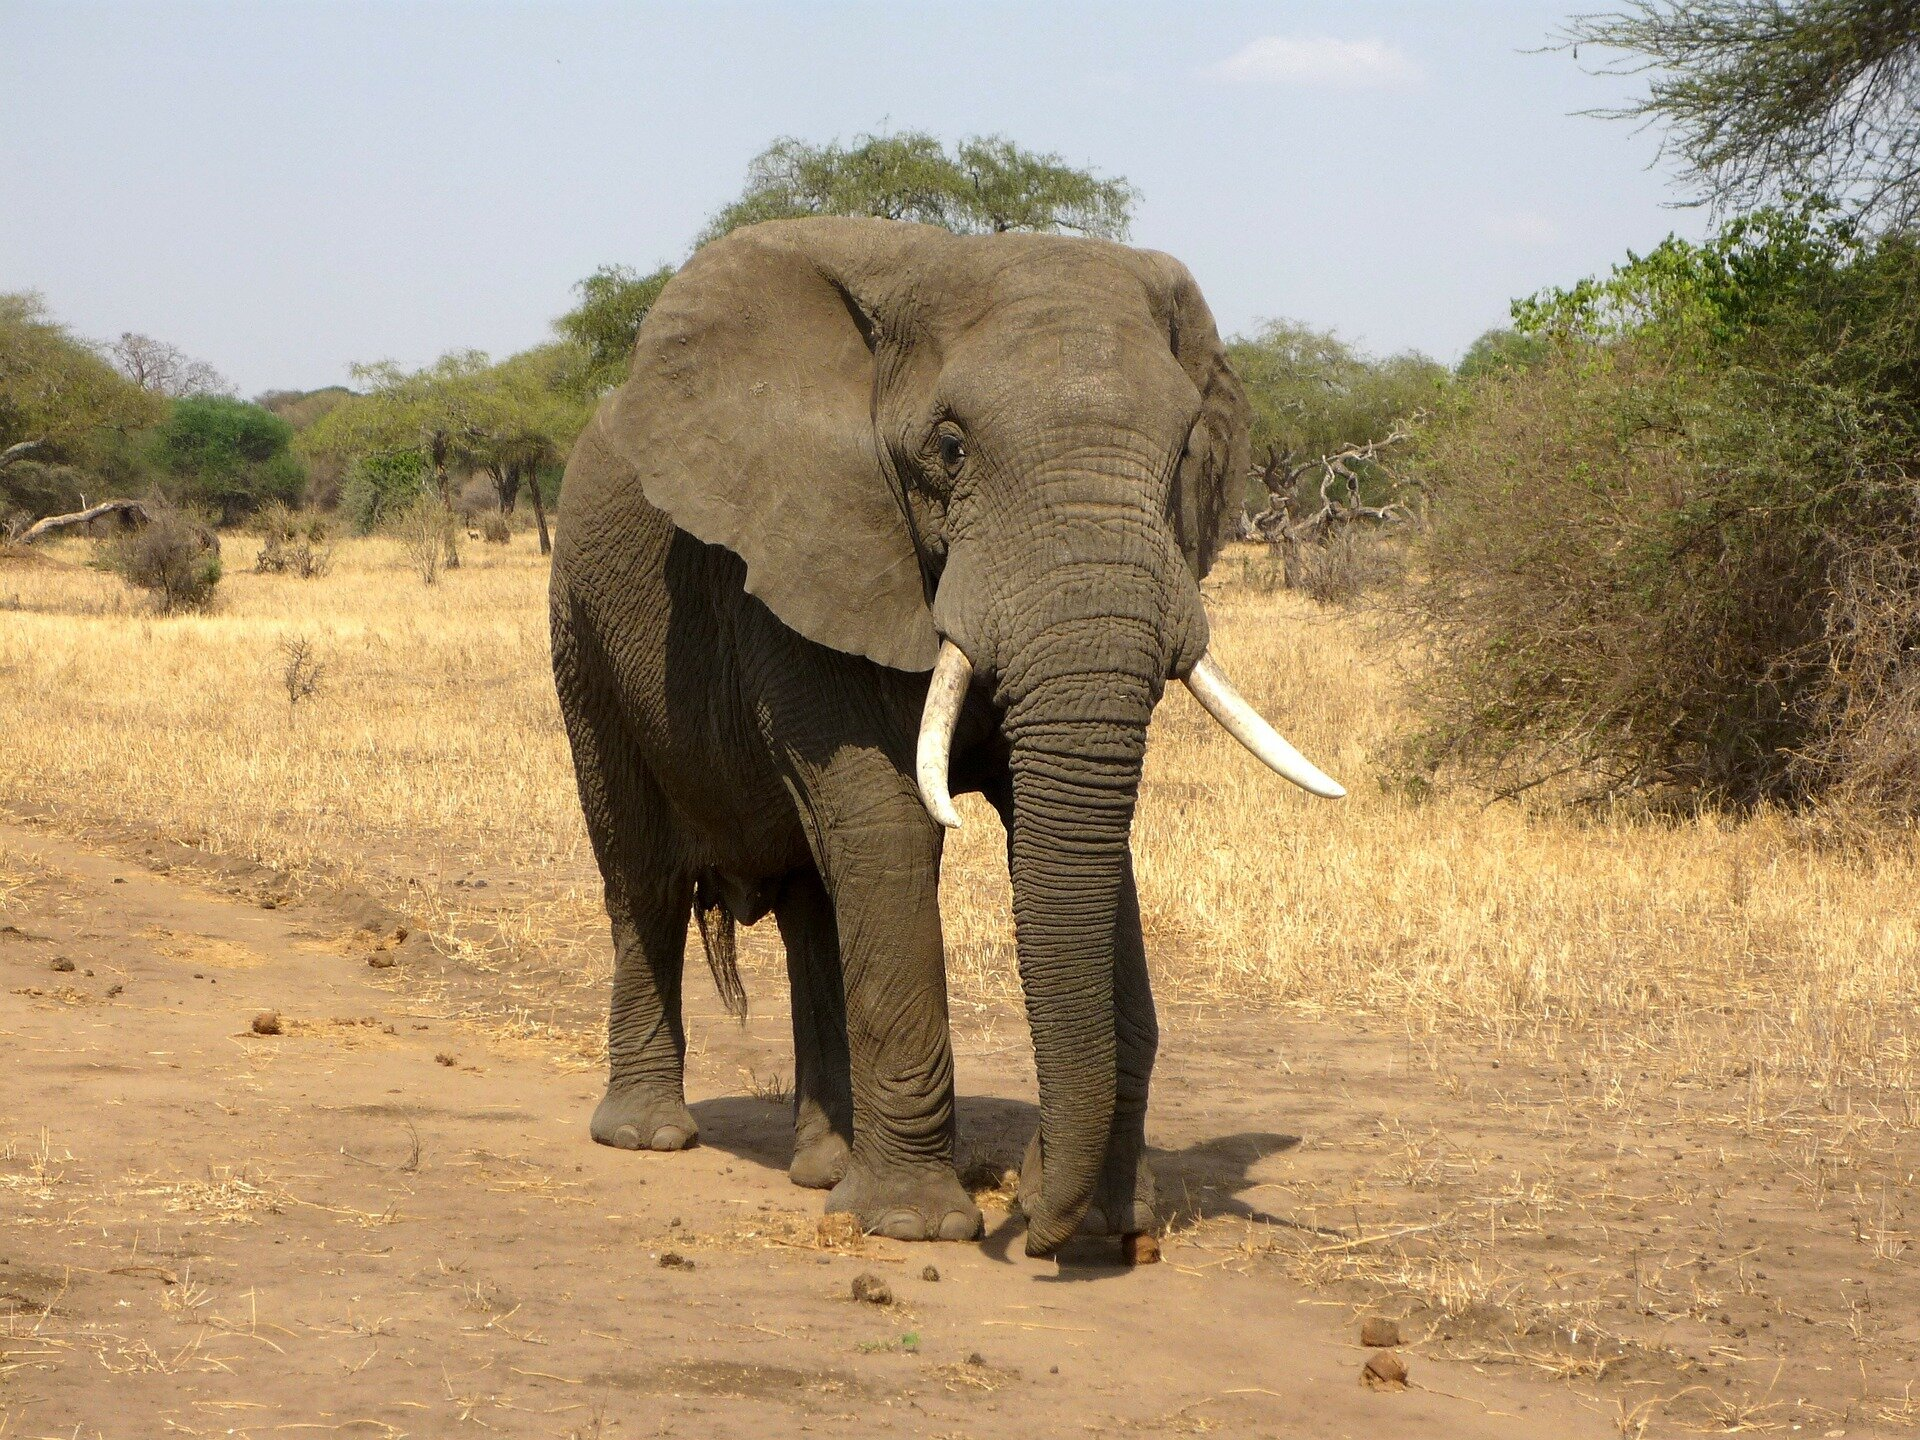 Researchers study elephants' unique interactions with their dead